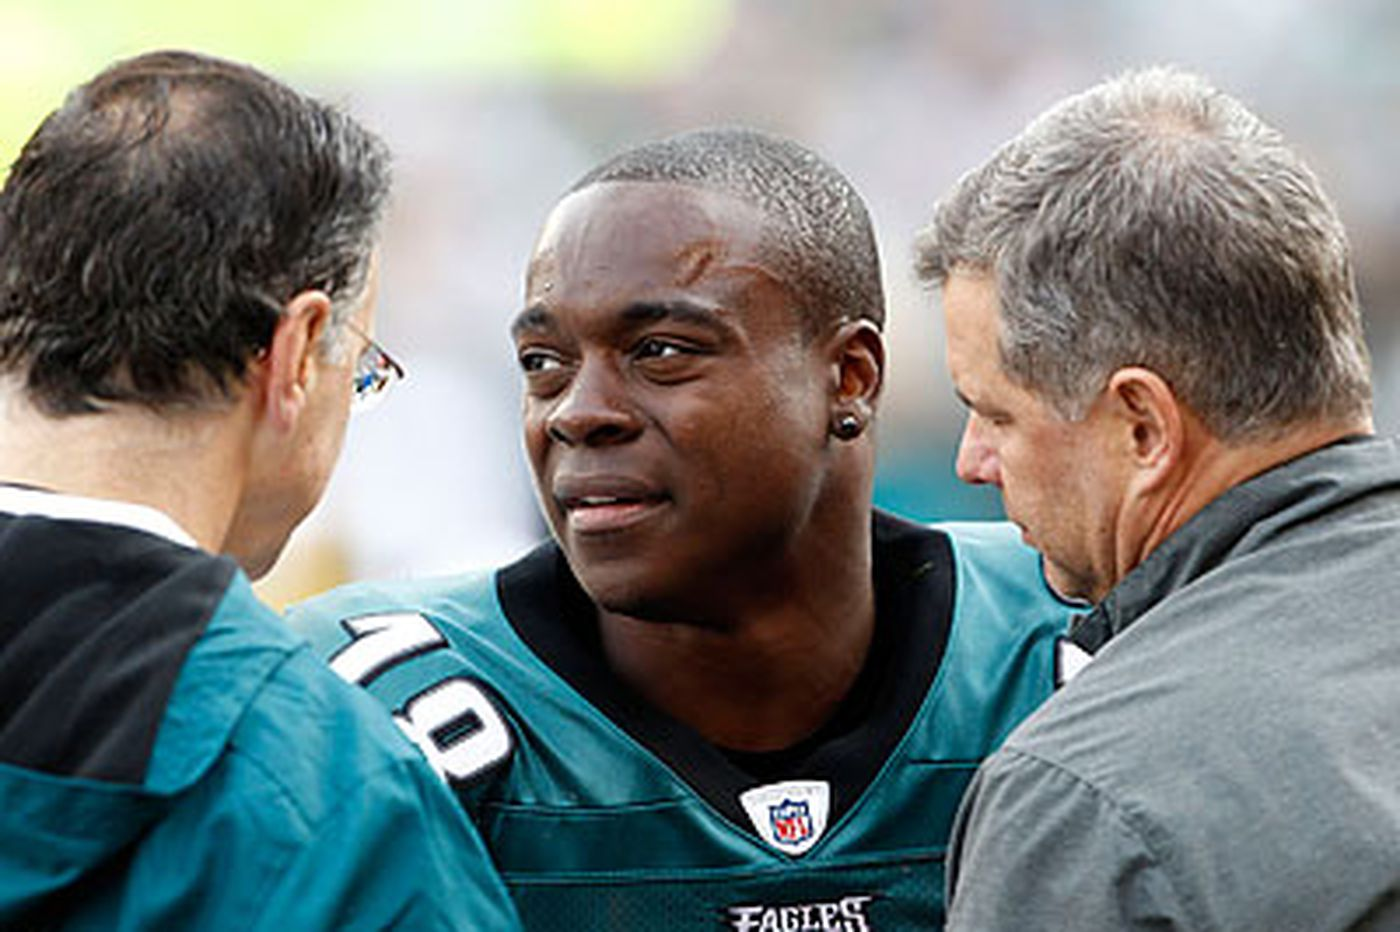 Eagles Notebook: Maclin plans return to Eagles lineup